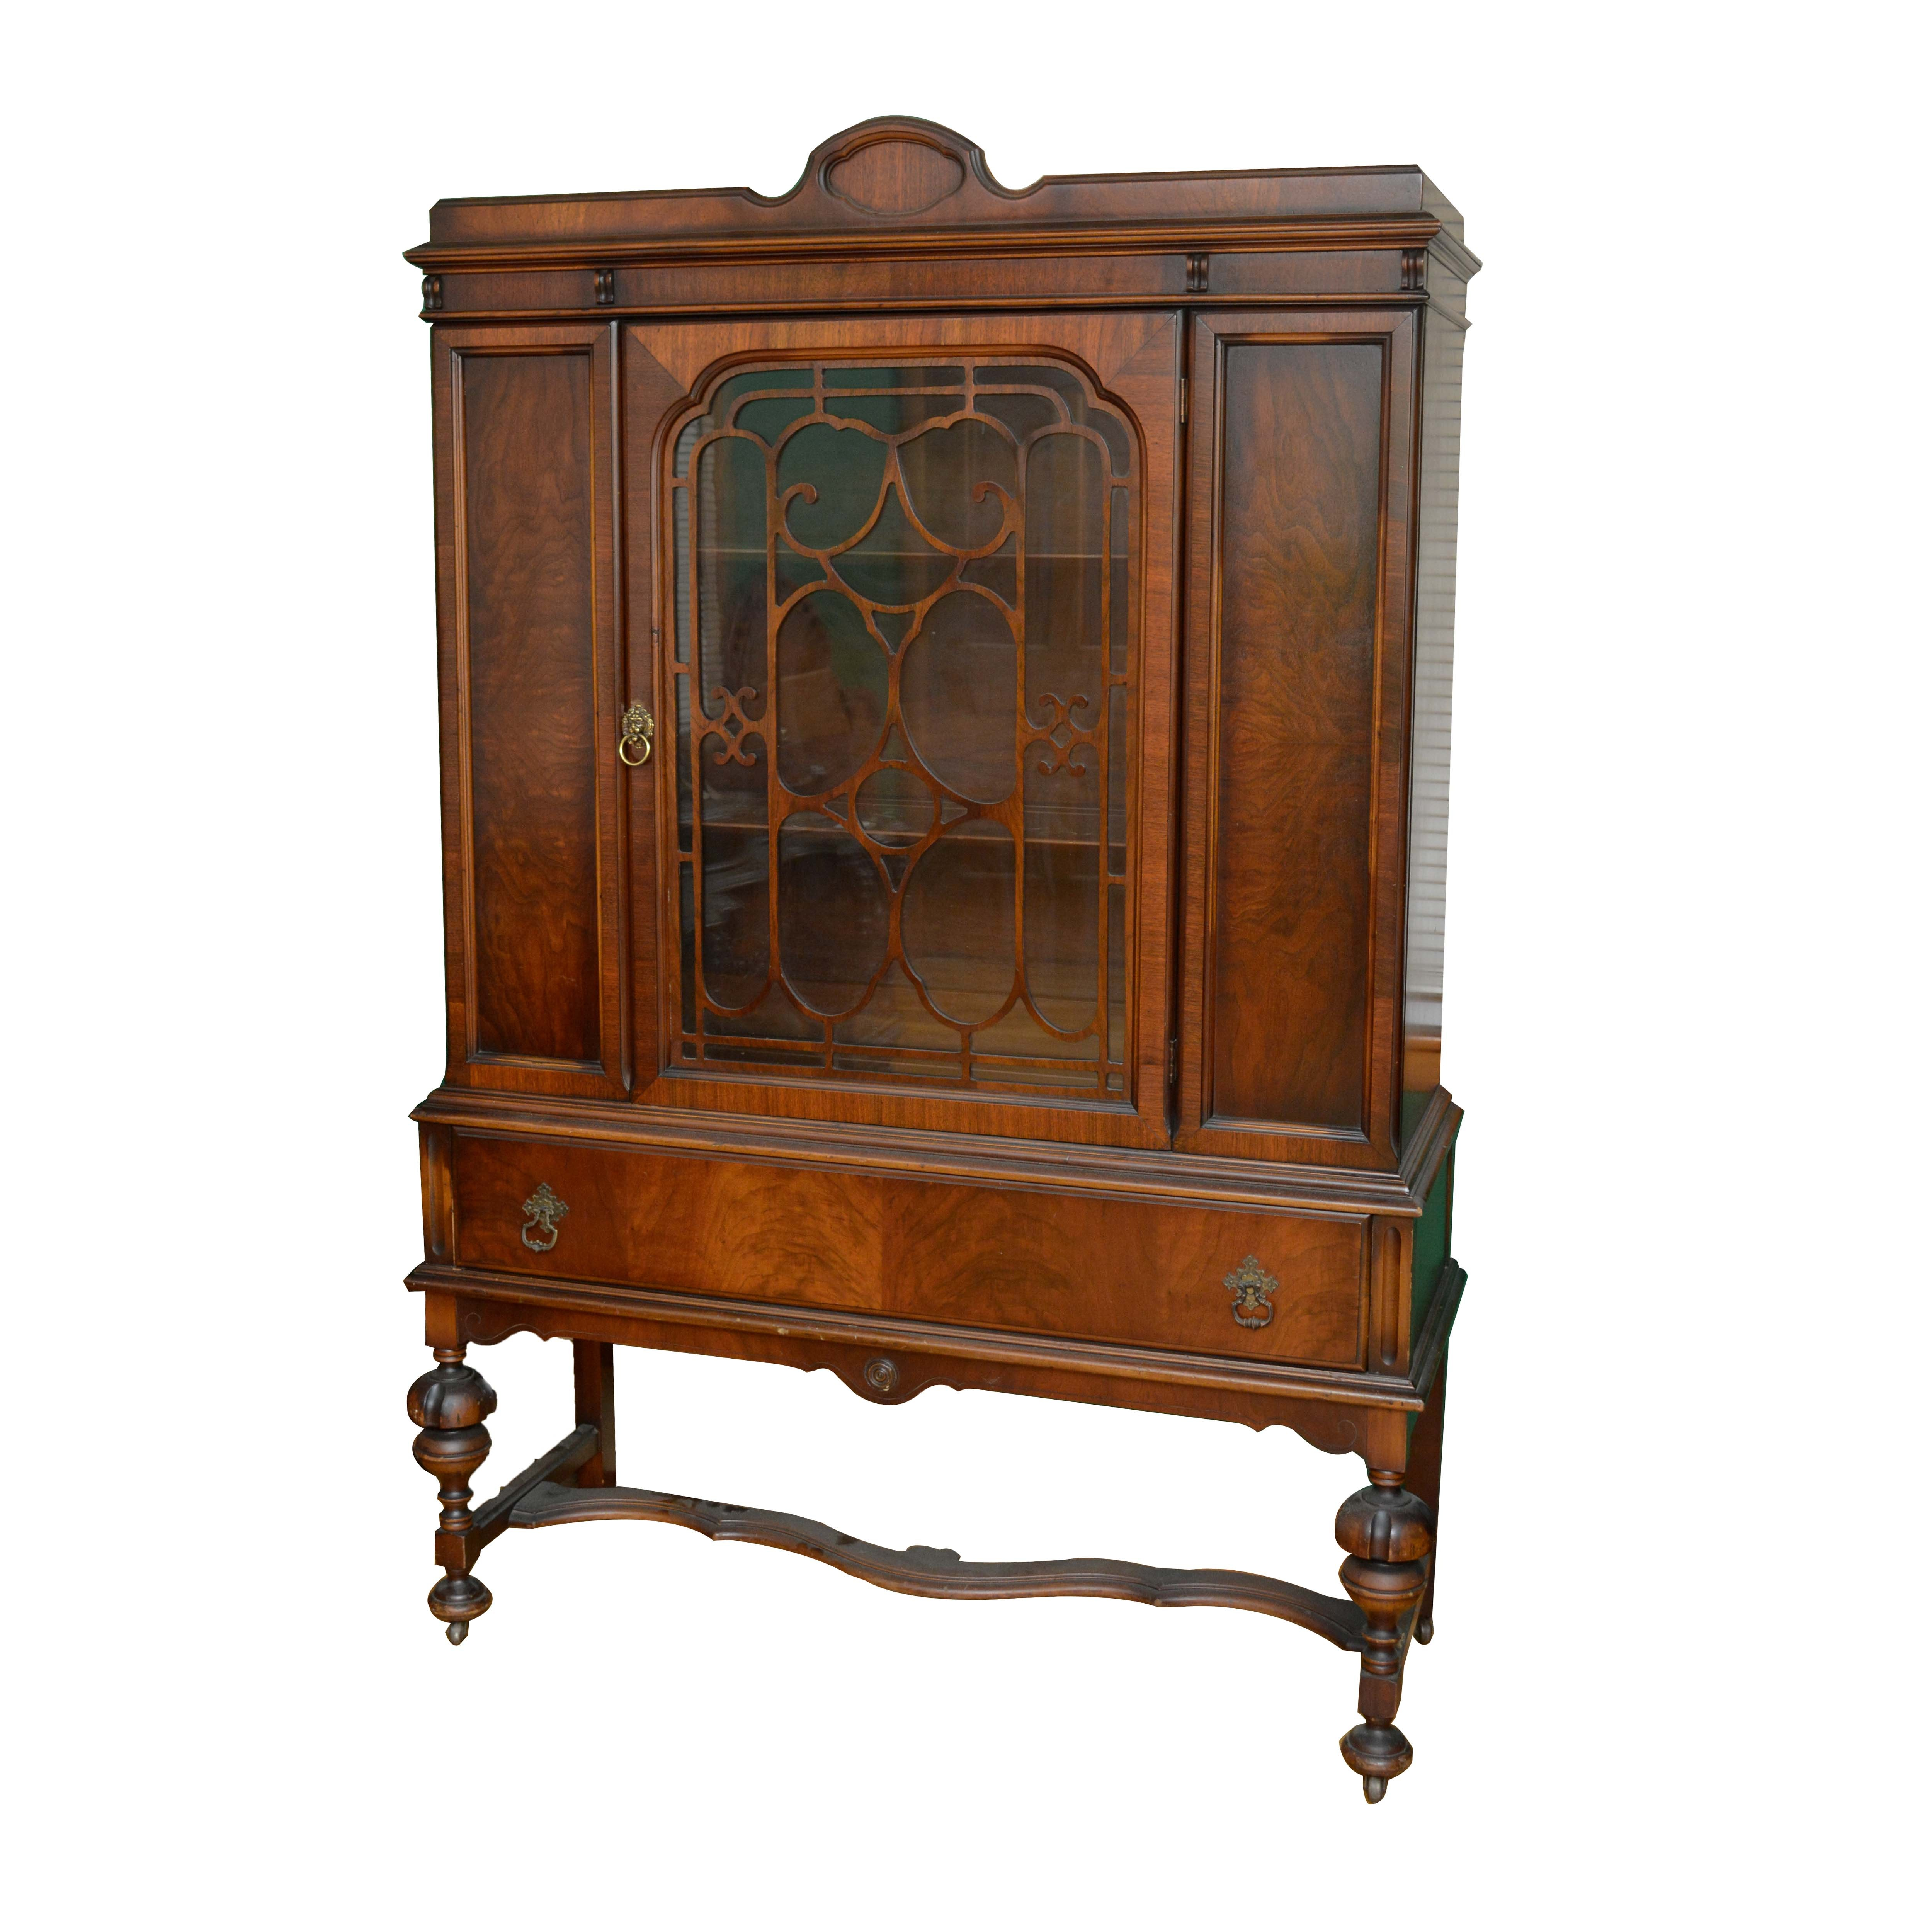 Jacobean Revival Style Burl Wood China Cabinet, Early 20th Century